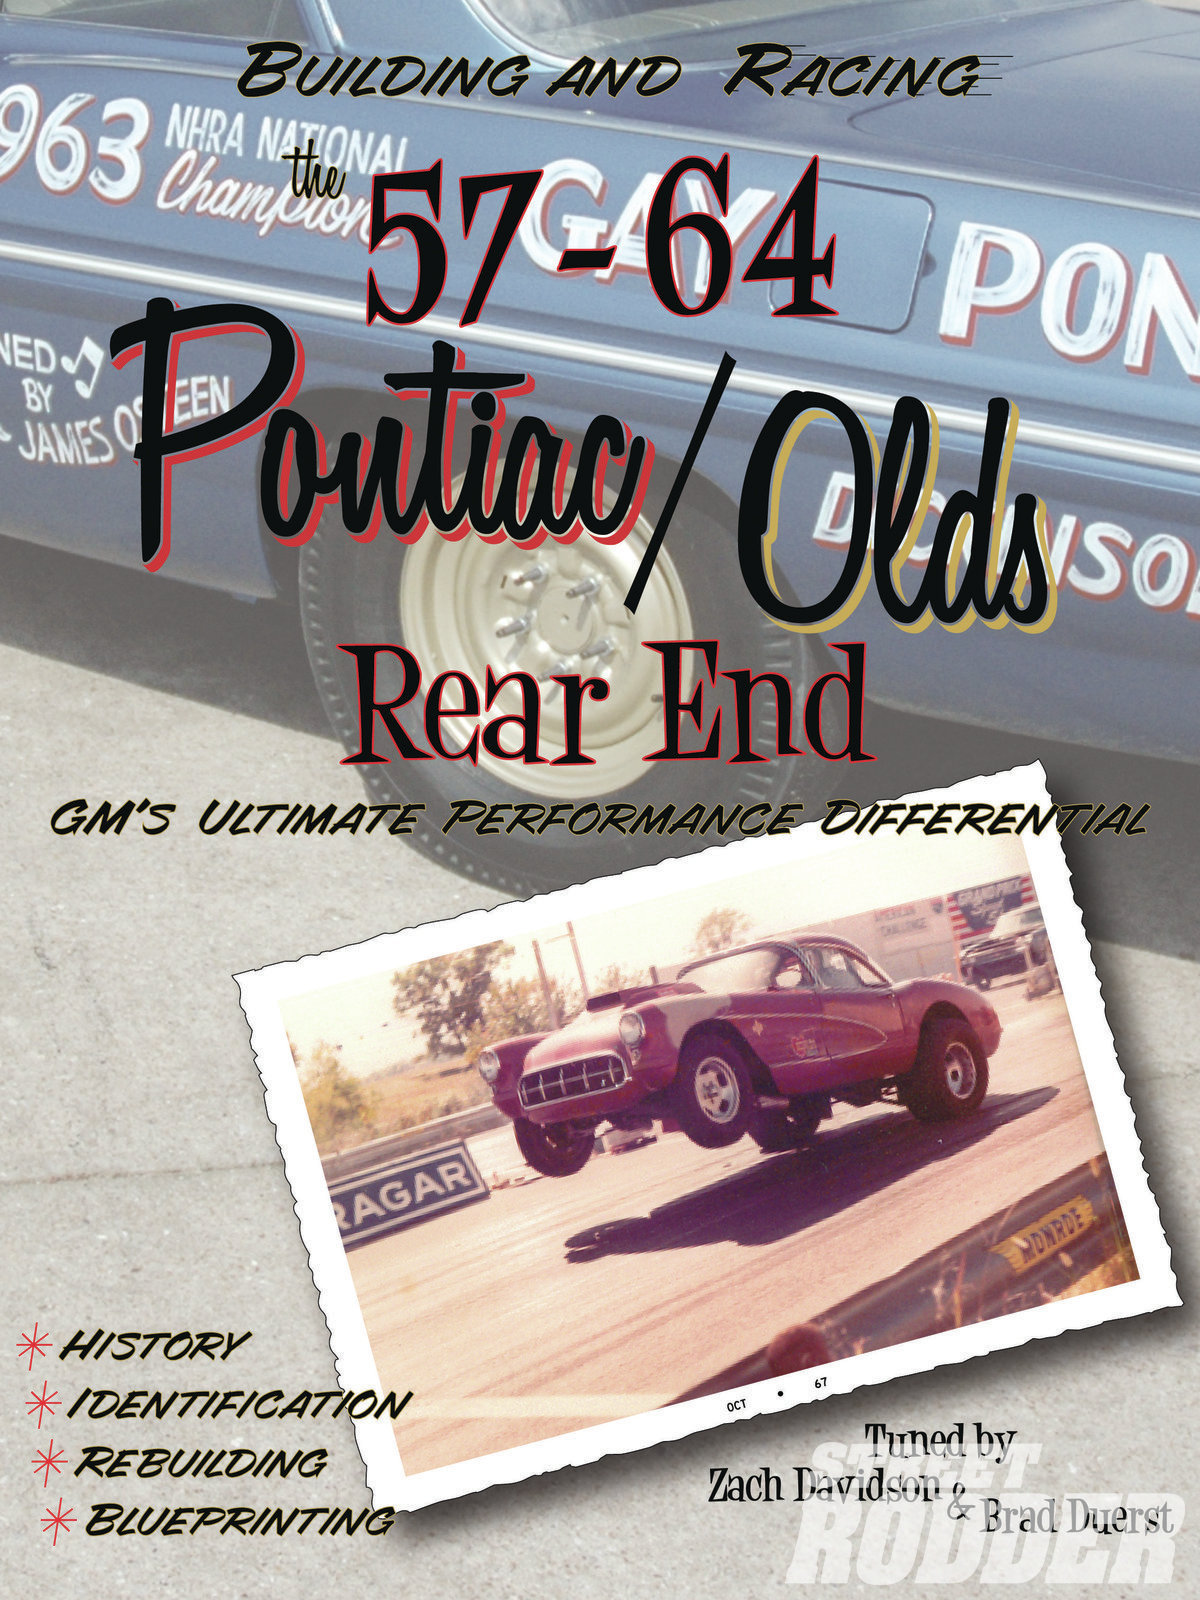 For complete information on Pontiac/Olds rearends this book from Fabcraft Metalworks by Zach Davidson and Brad Duerst is a must-have.